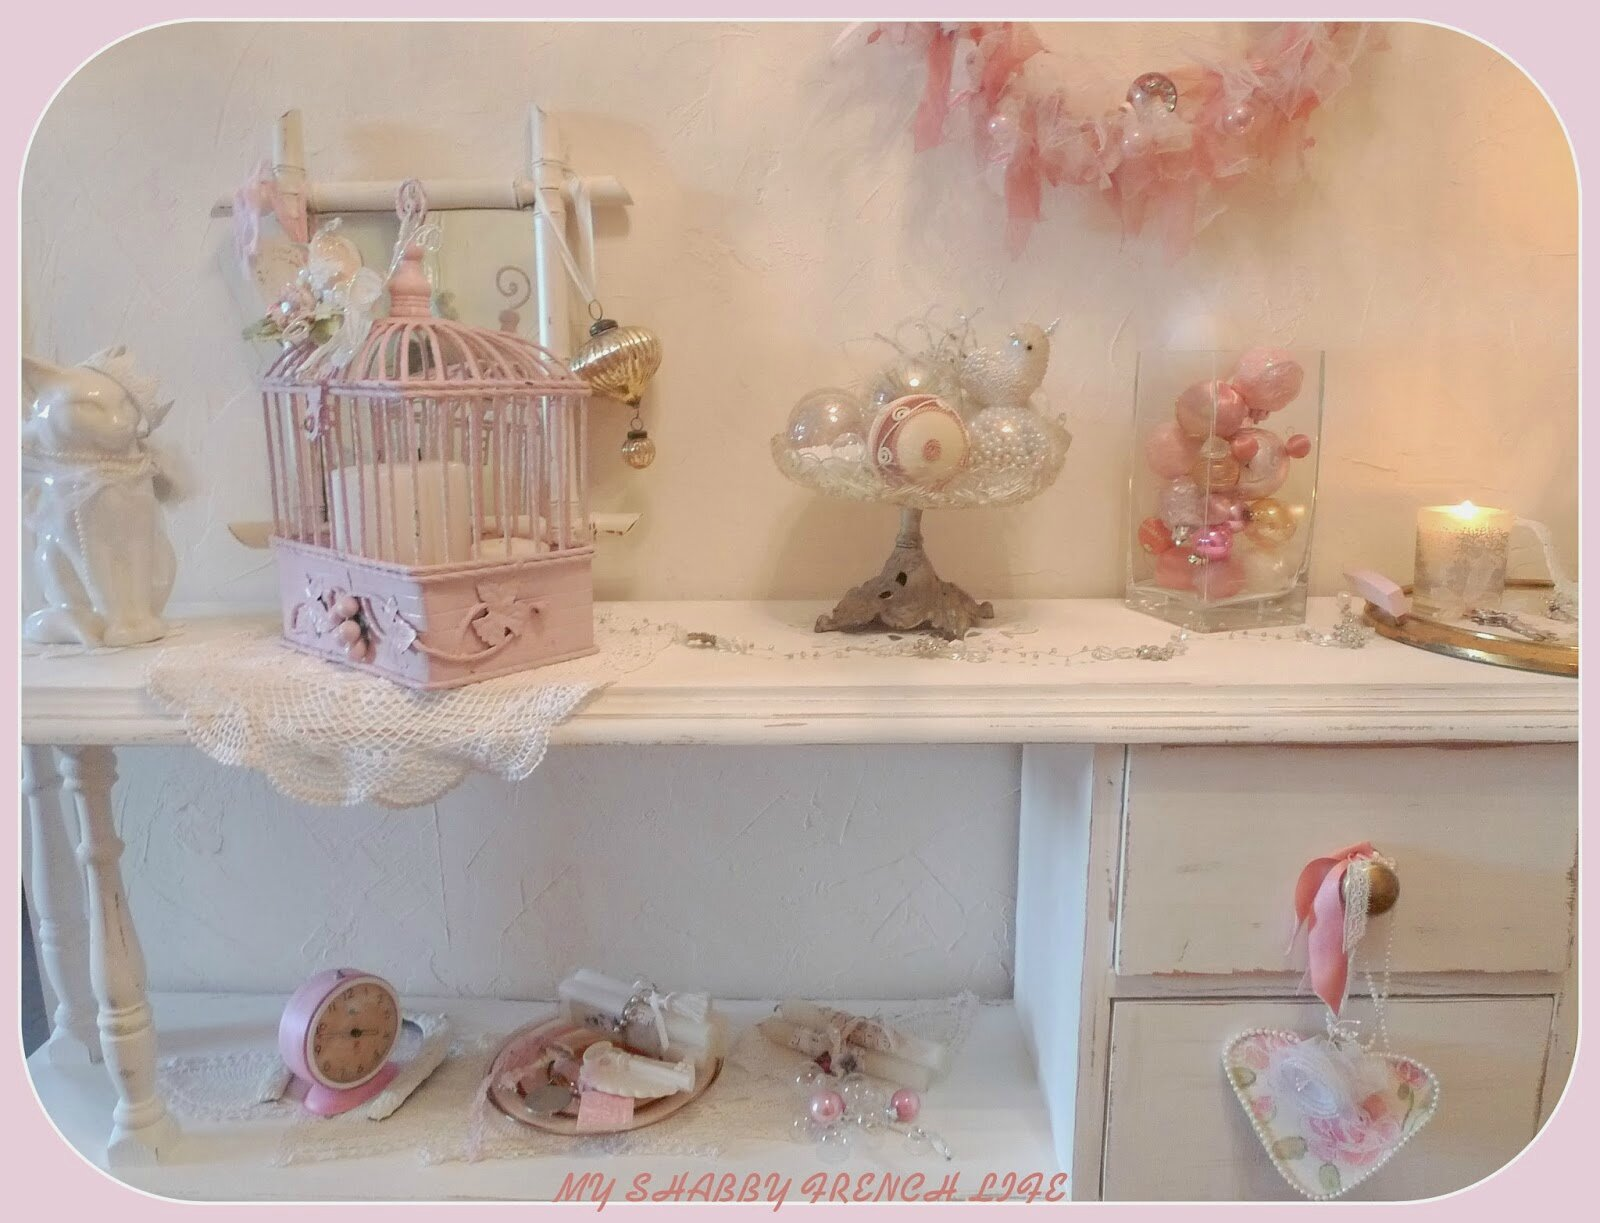 noel shabby chic rose 13 photo de shabby chic une petite pause. Black Bedroom Furniture Sets. Home Design Ideas